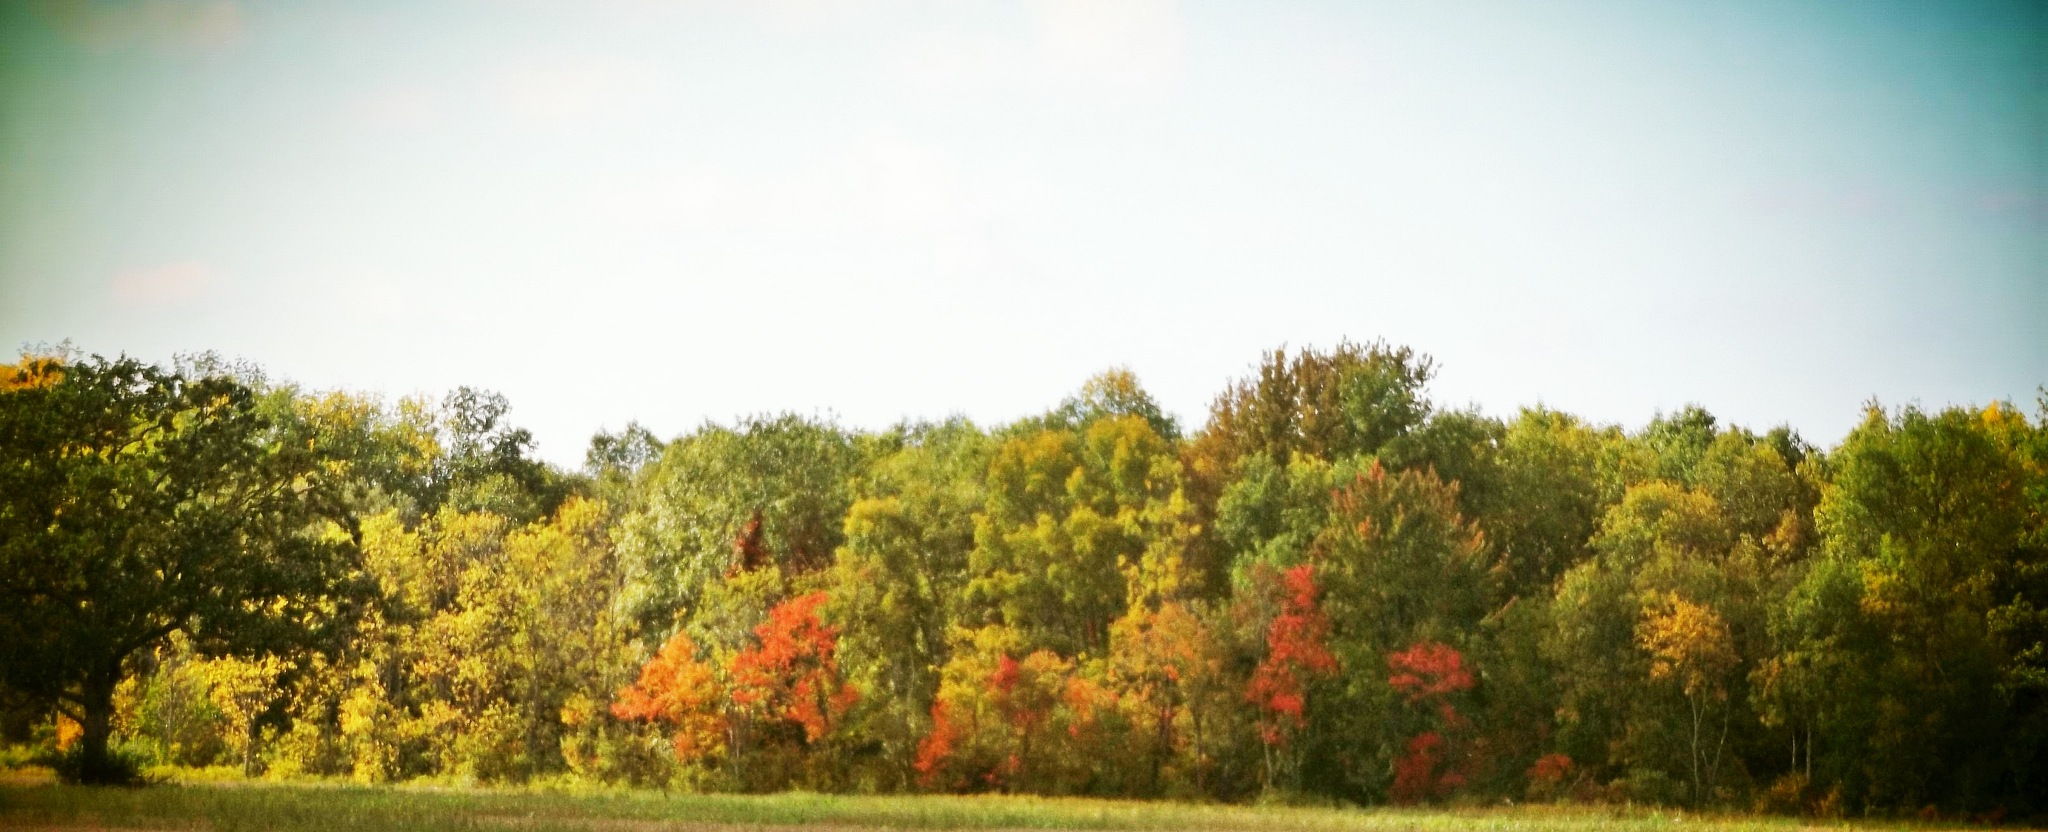 PICTURE PERFECT IN UPSTATE NEW YORK by Dawn Hoffmeister